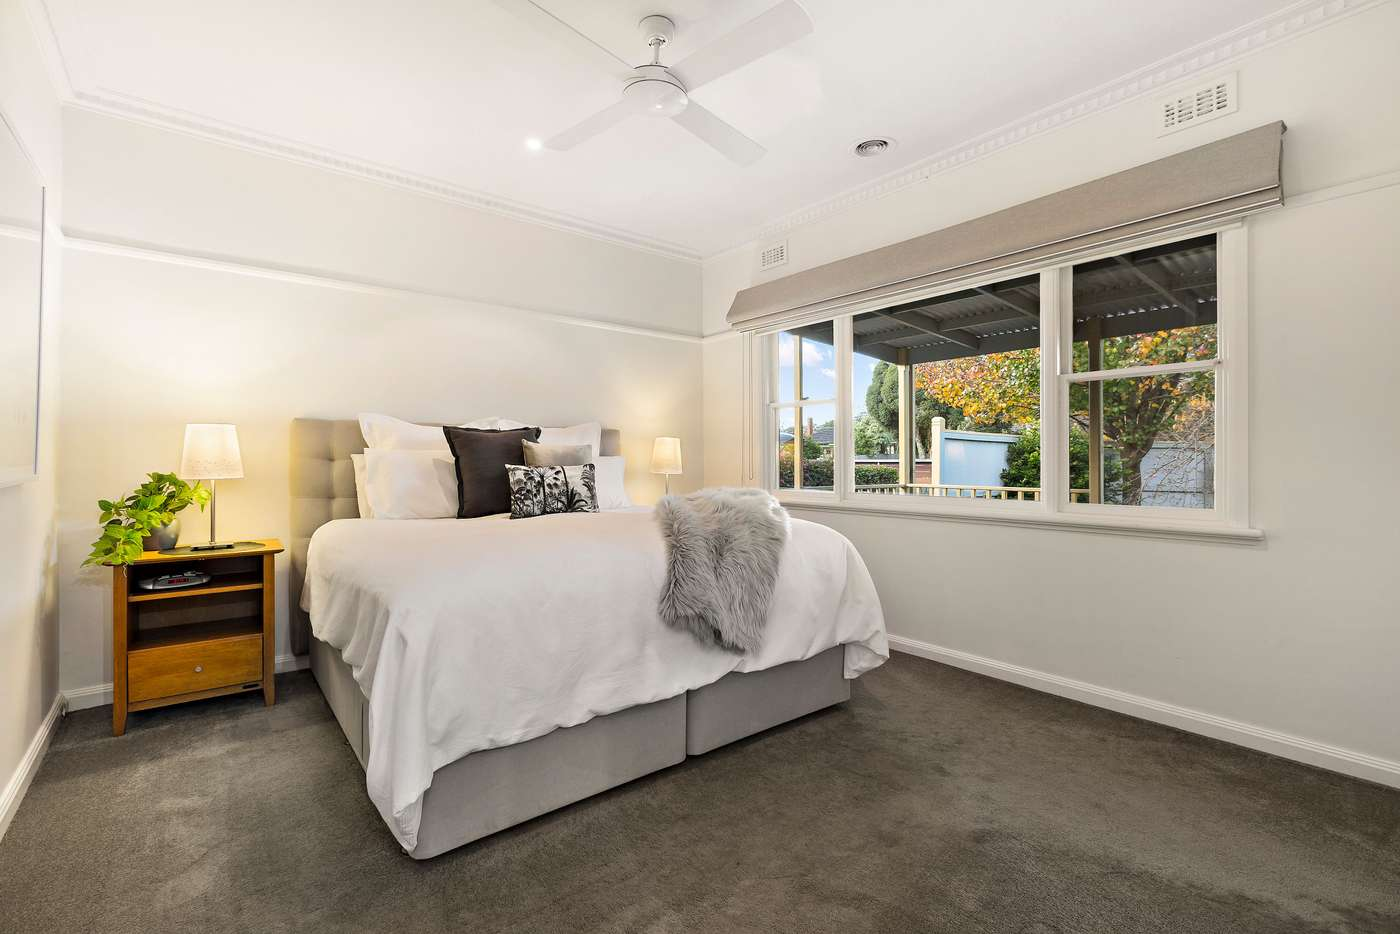 Sixth view of Homely house listing, 5 Delos Street, Oakleigh South VIC 3167